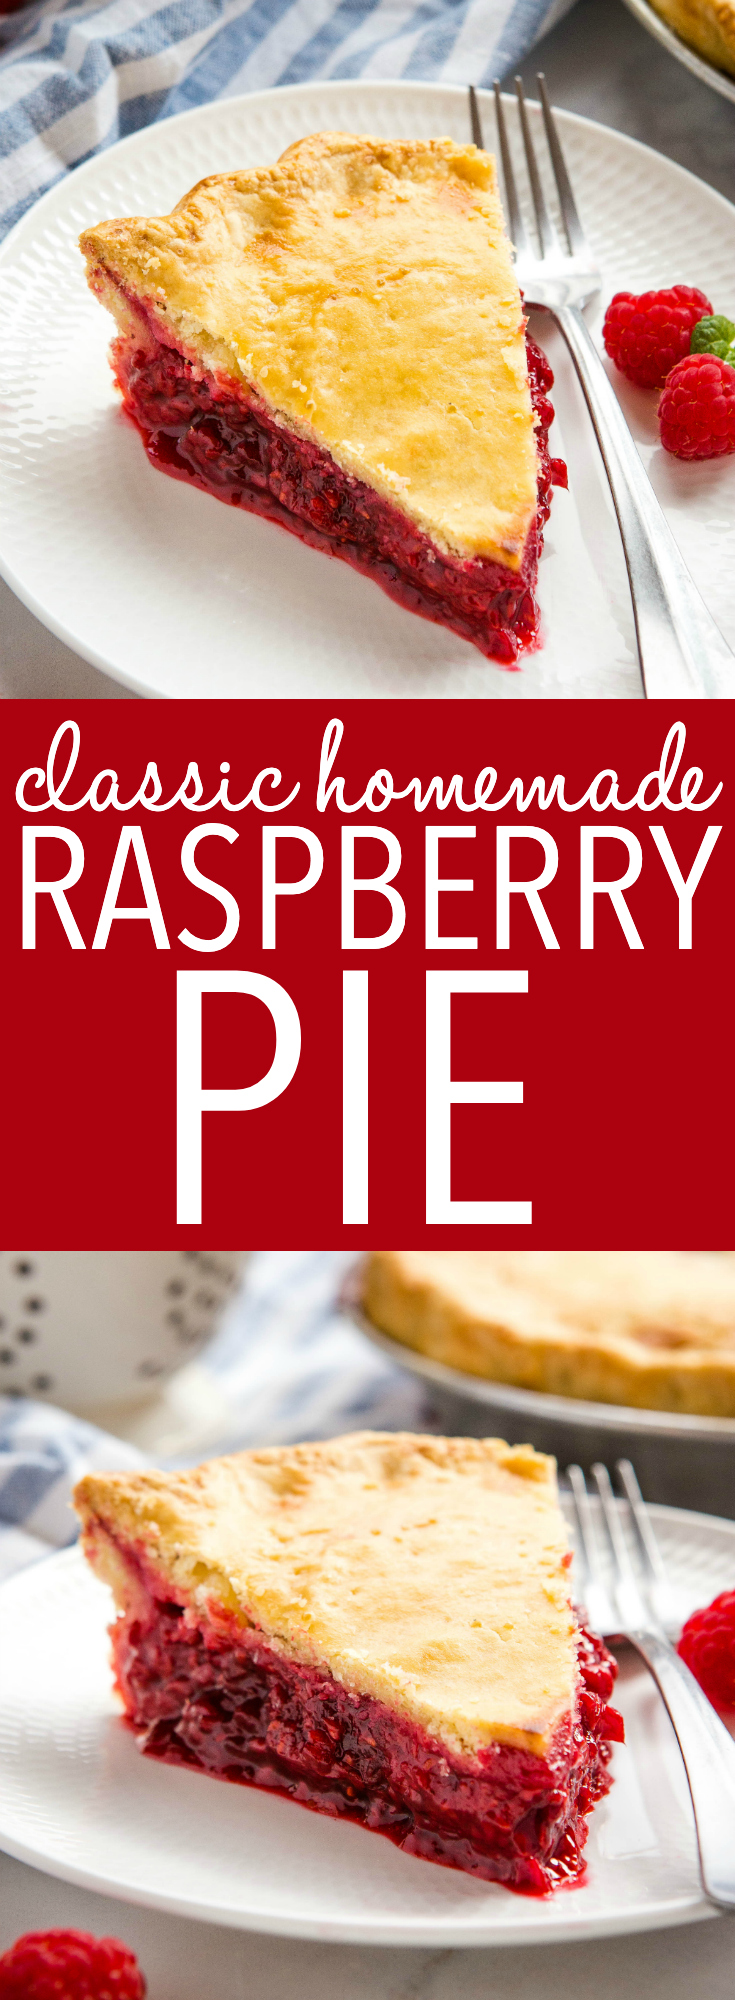 This Classic Raspberry Pie is the perfect summer dessert recipe made with an all-butter crust & fresh raspberries - with 10 Pro Tips for the perfect pie! Recipe from thebusybaker.ca! #raspberrypie #homemadepie #raspberry #baking #dessert #homesteading via @busybakerblog